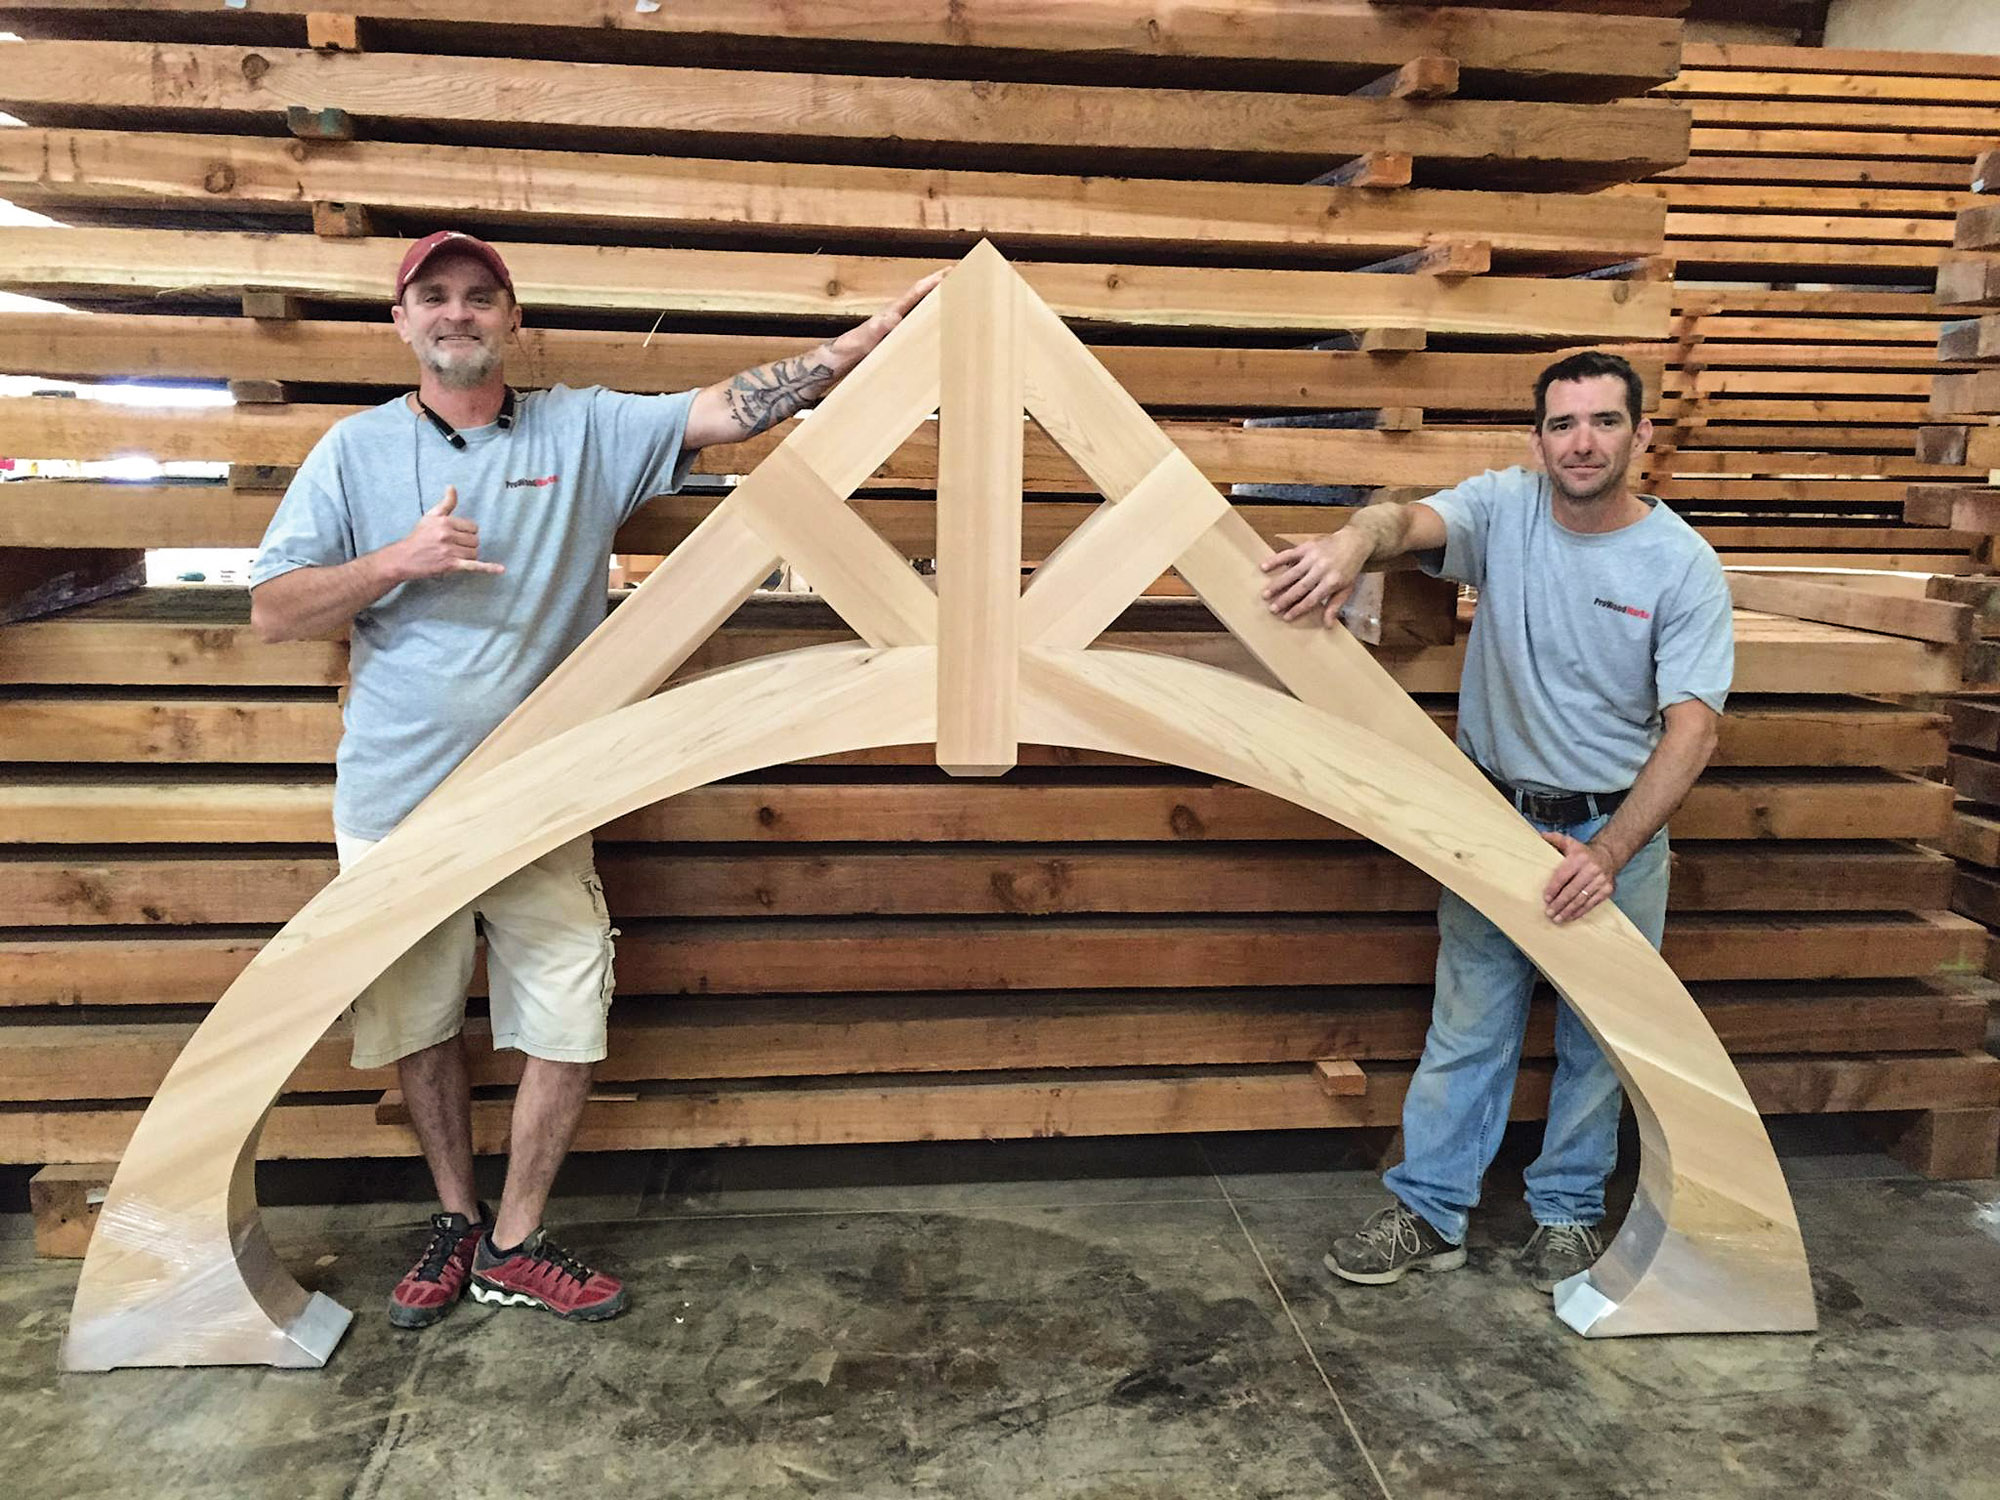 Depending on how they're constructed, arches, trusses, and brackets can be structural, partially supportive, or purely decorative